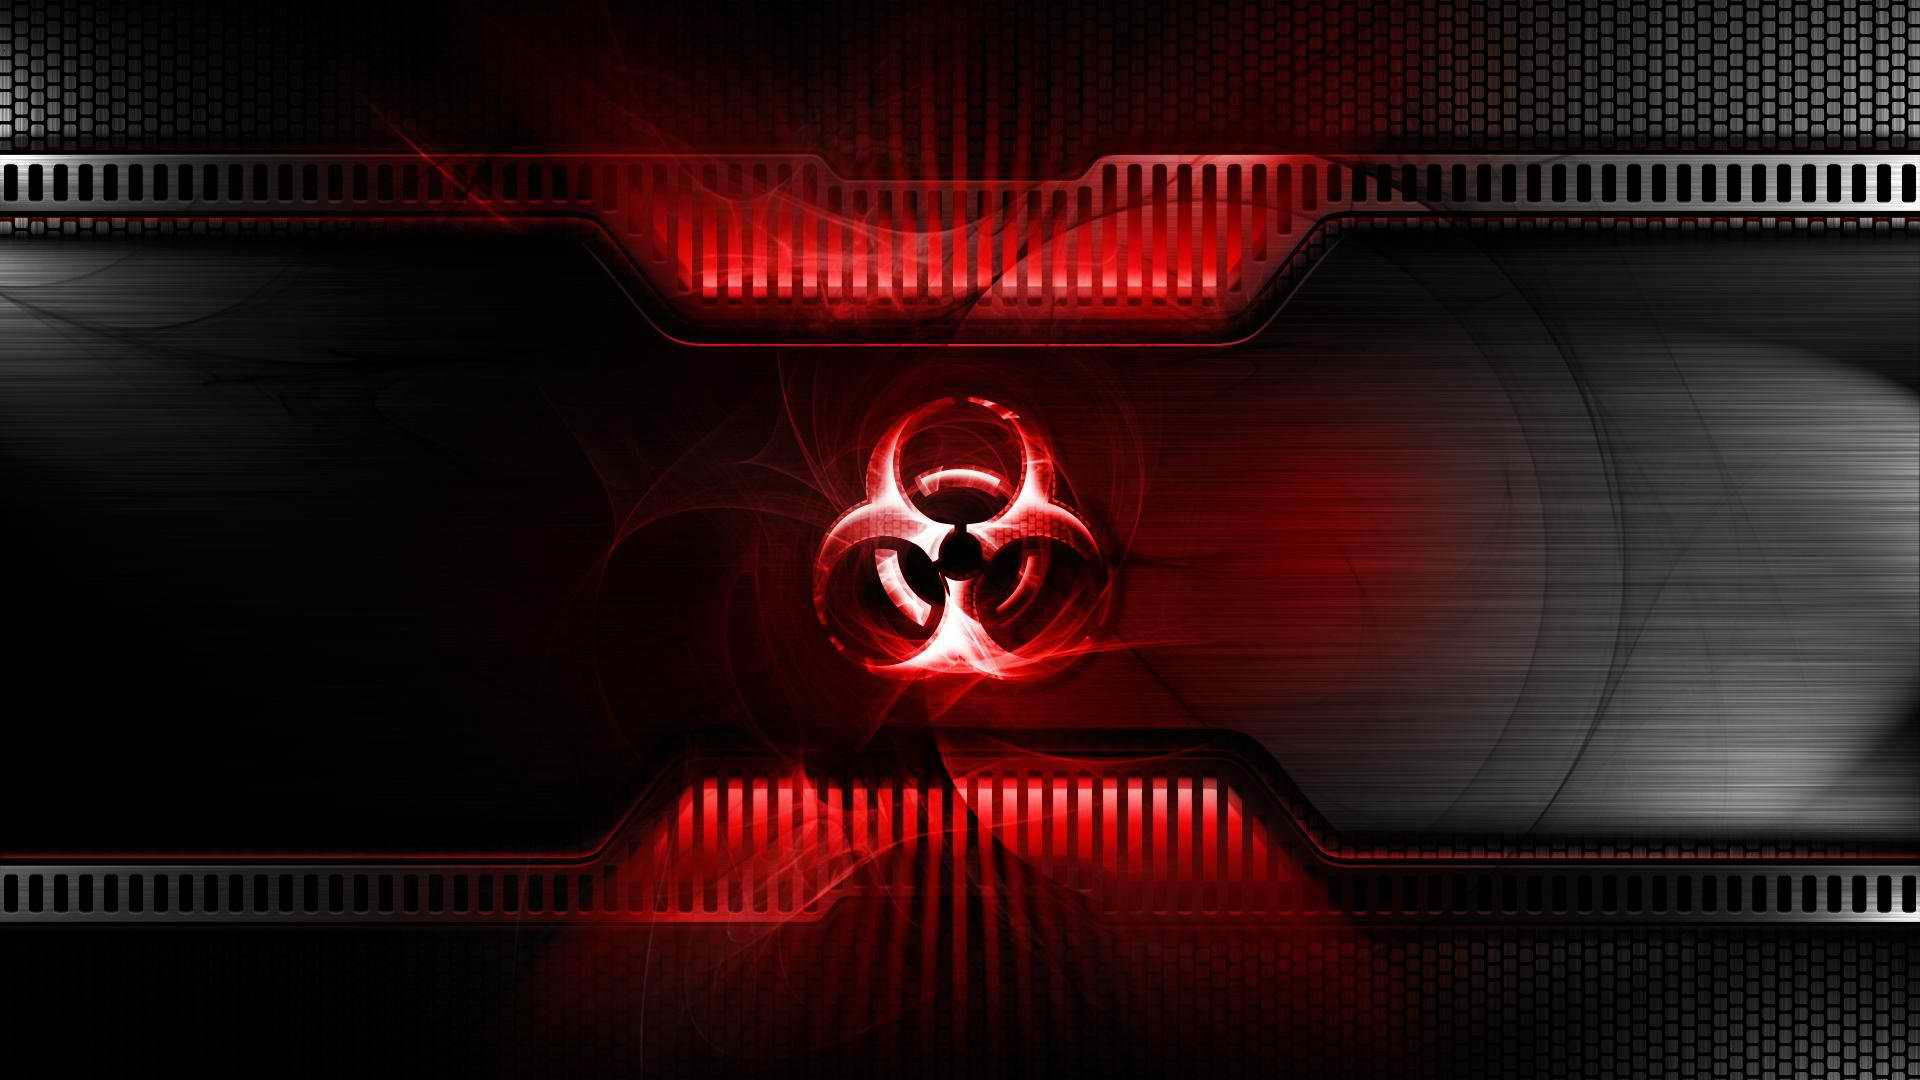 Cool Red Wallpaper For Laptop